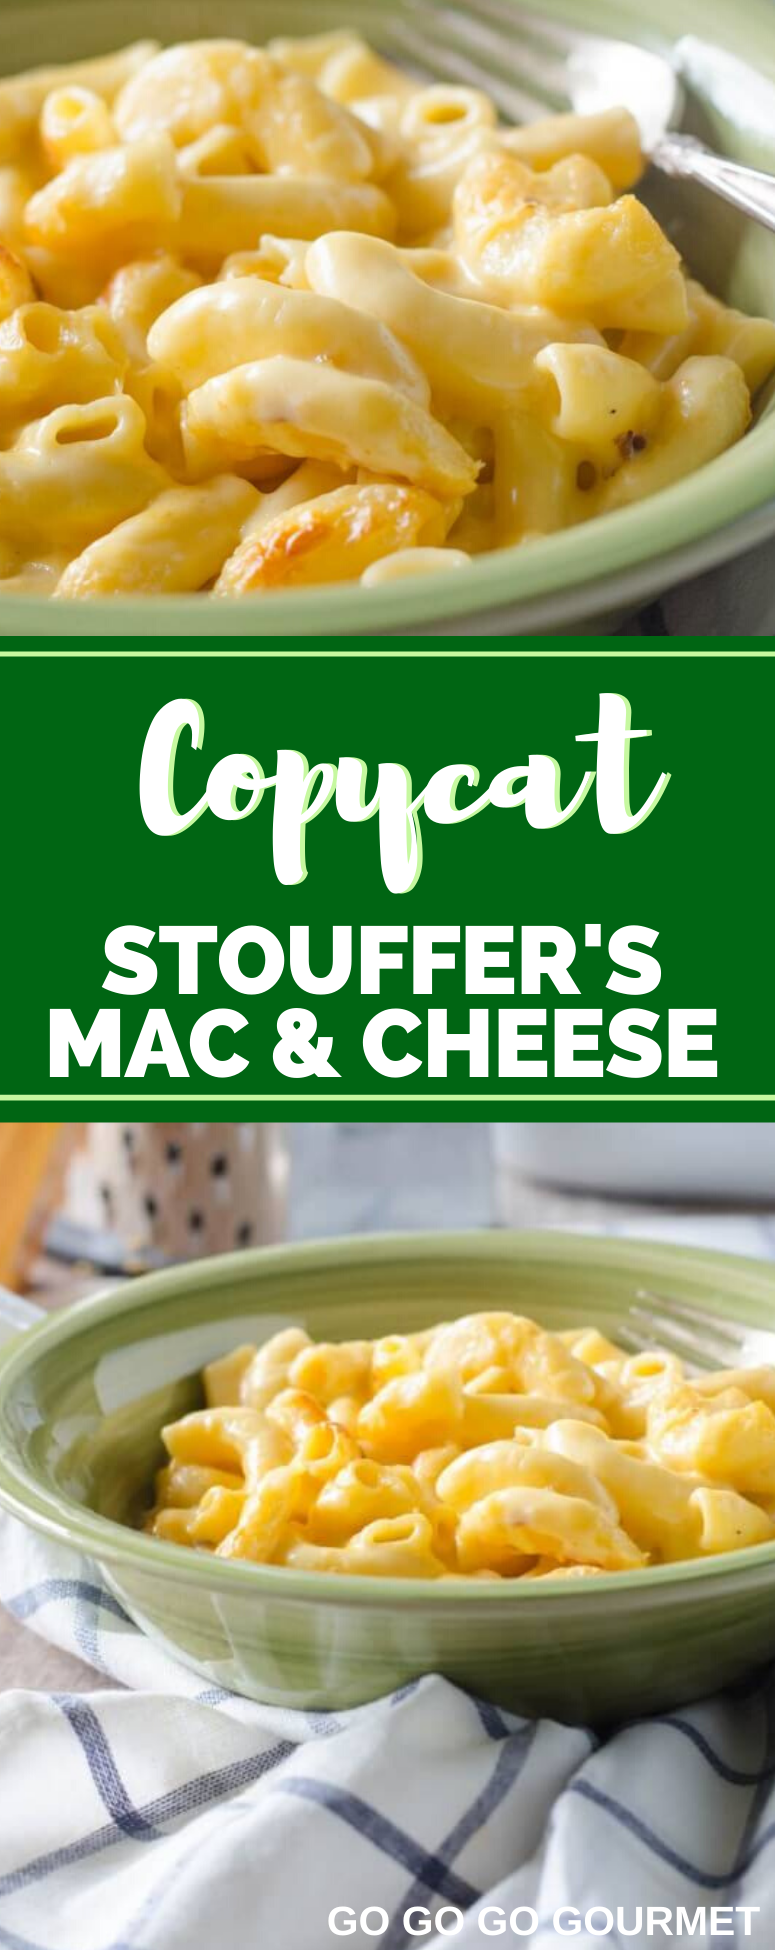 This Copycat Stouffer's Mac and Cheese recipe is the best comfort food hack! This creamy, cheesy dinner idea will leave you wanting more! #copycatrecipes #macandcheese #souffersmacandcheese #easydinnerrecipes #gogogogourmet via @gogogogourmet